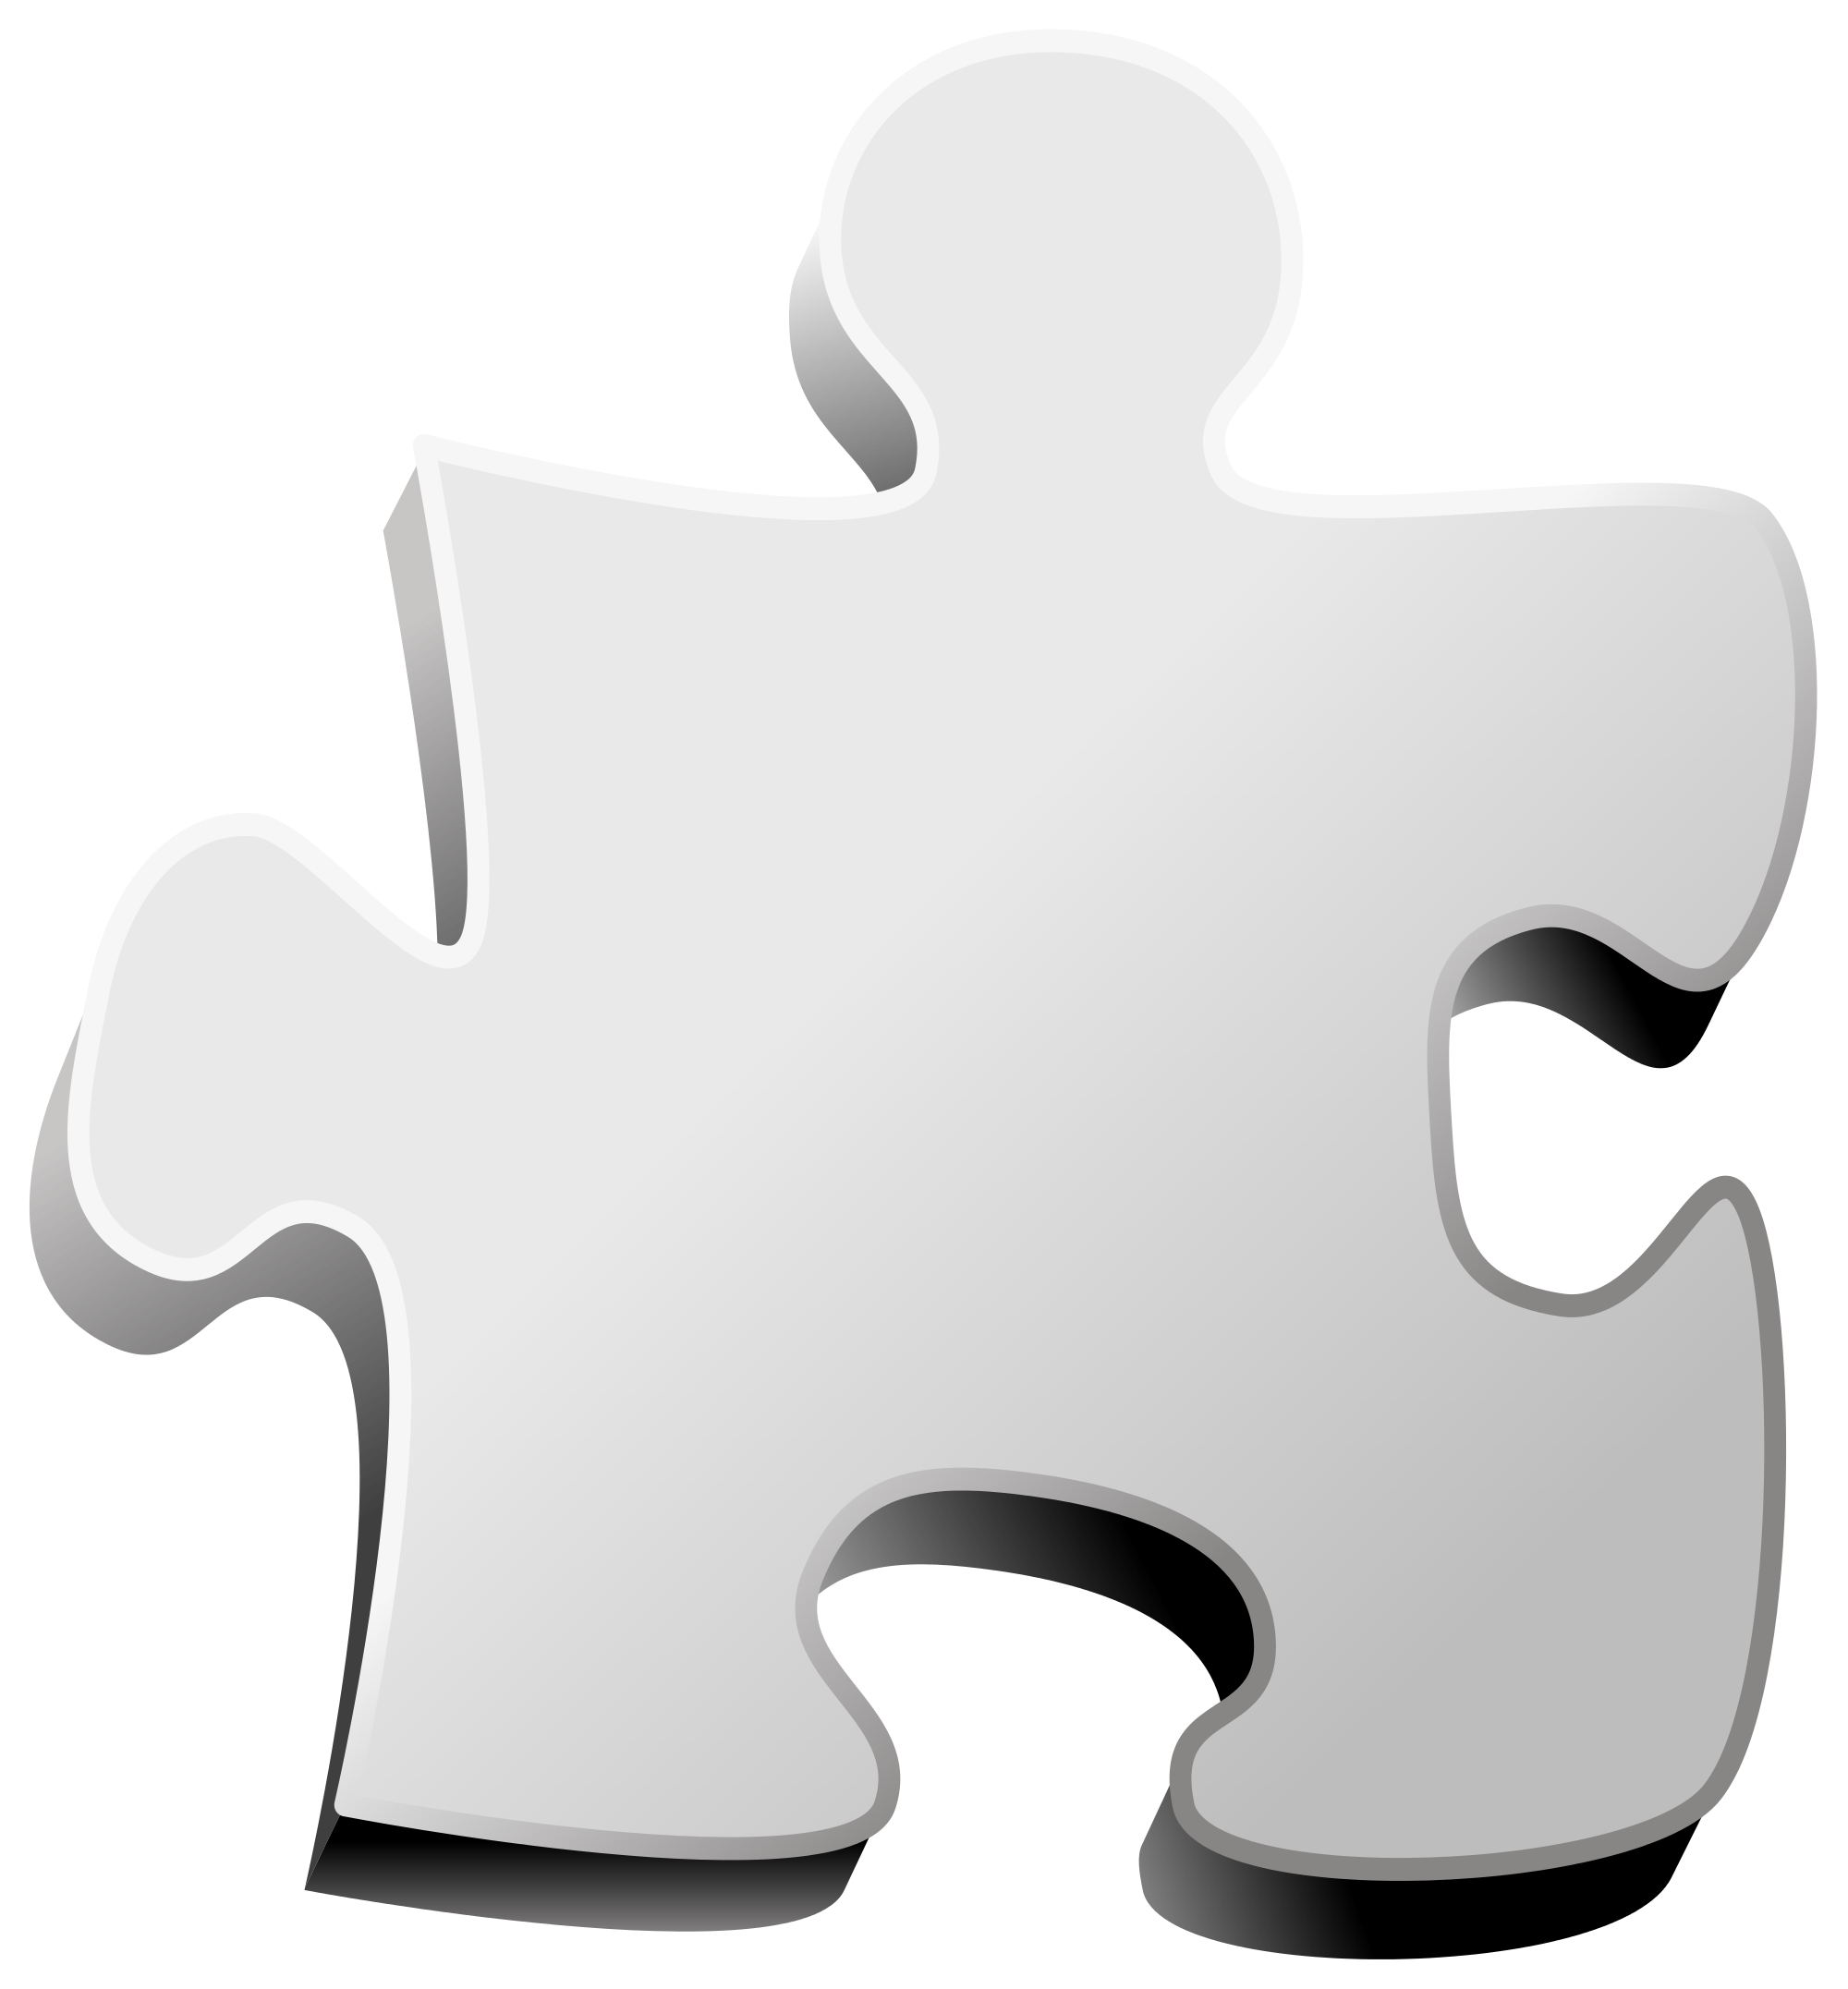 Puzzle clipart blank. File wiki piece svg